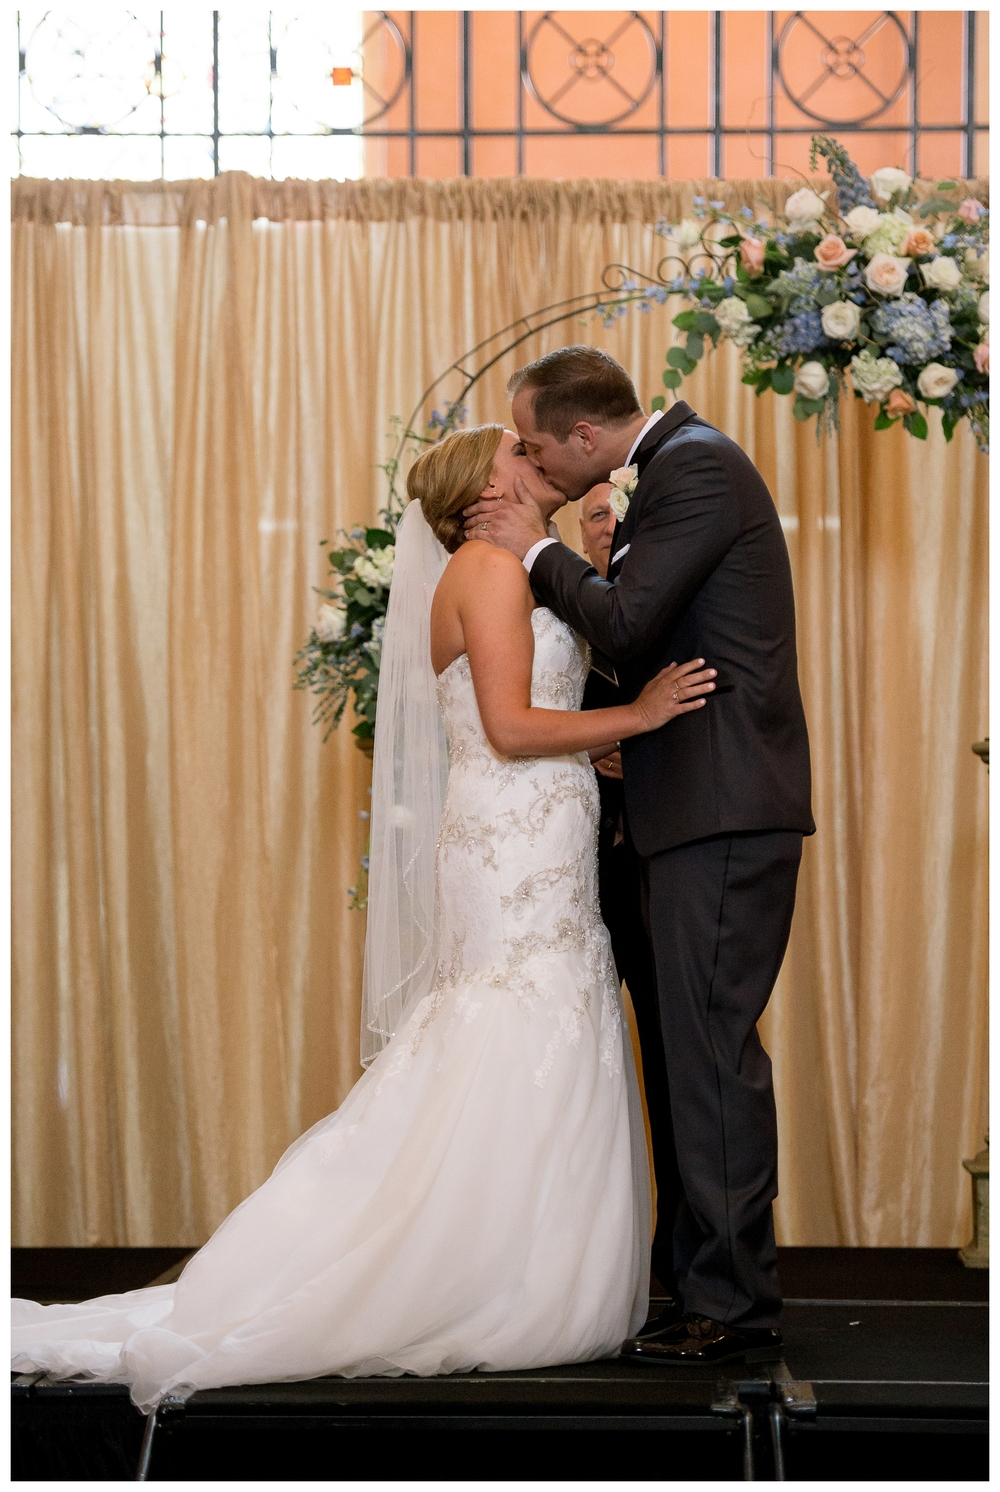 Rebecca_Bridges_Photography_Indianapolis_Wedding_Photographer_4186.jpg